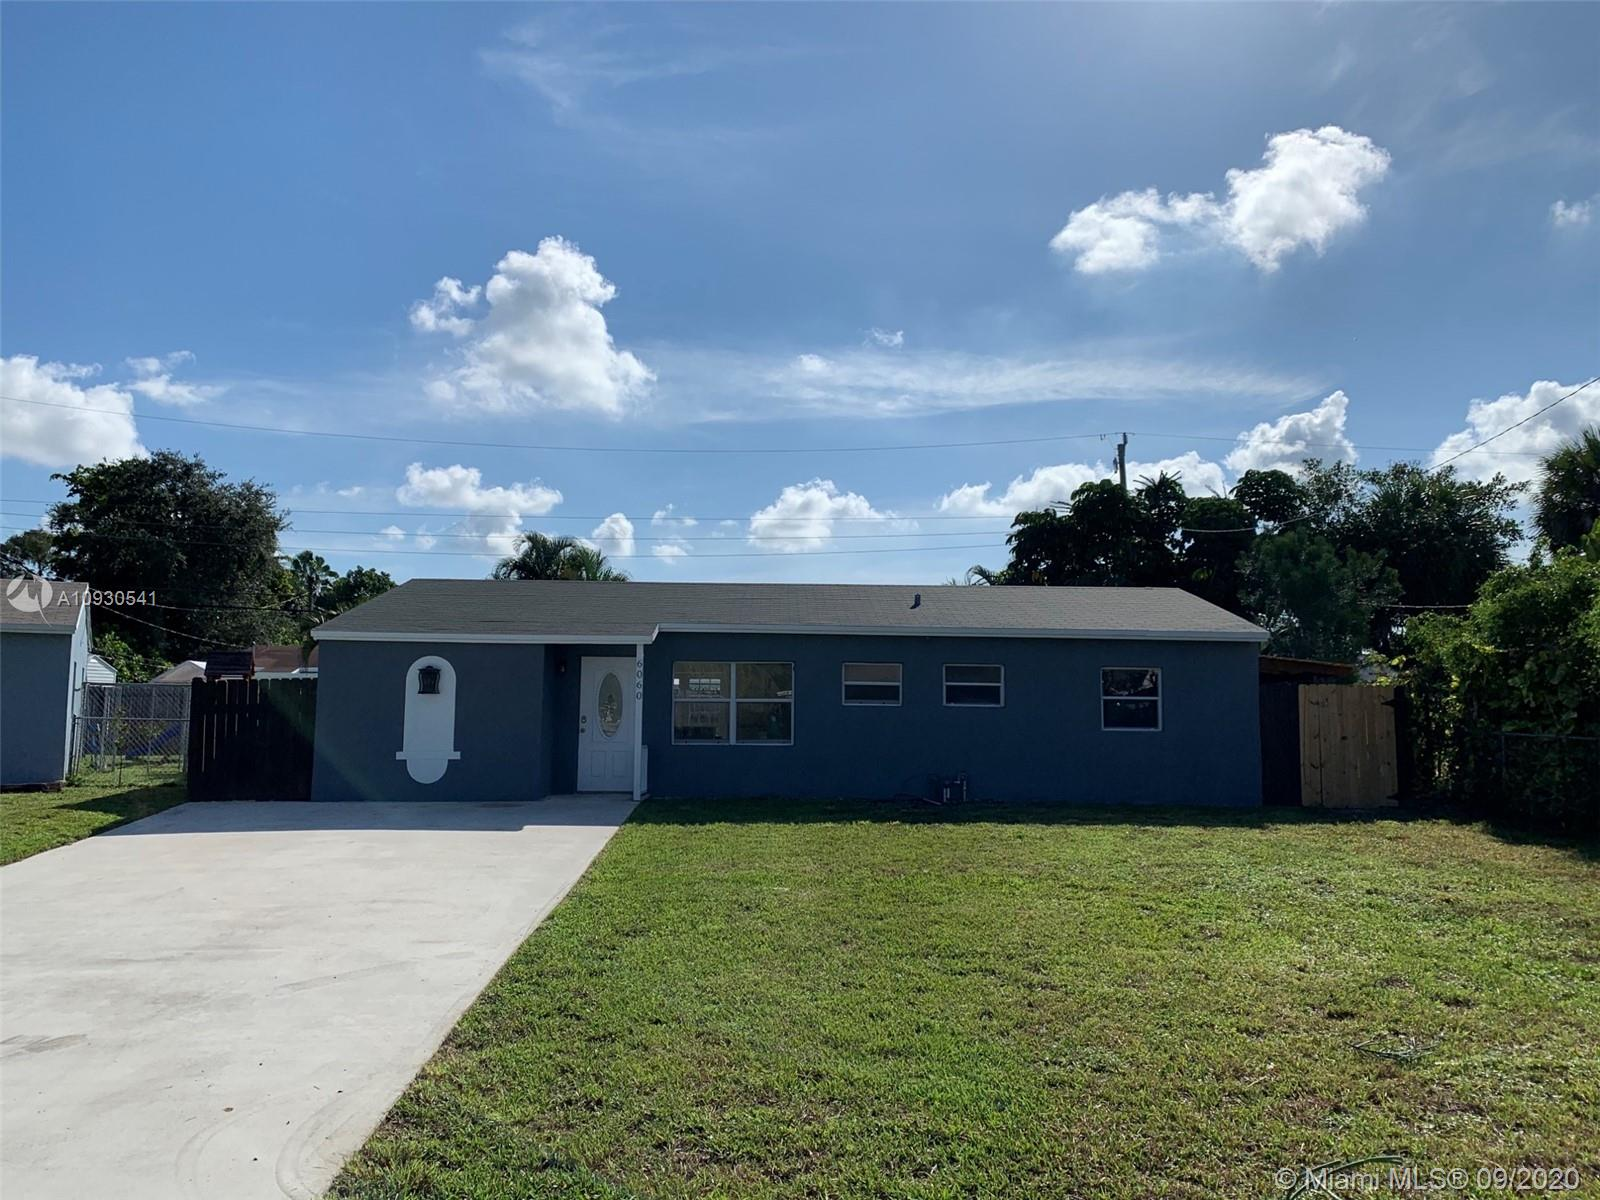 Rare pool home in Oakland Park! Brand new kitchen, quartz countertops and beautiful cabinets. Plenty of storage! Brand new AC System and Ductwork installed in July. Roof from September 2017. New electrical panels. Very close to i-95 along with school and shopping centers.. Roughly 15 minutes from the beach! Side door in kitchen to b e replaced or negotiated in contract.